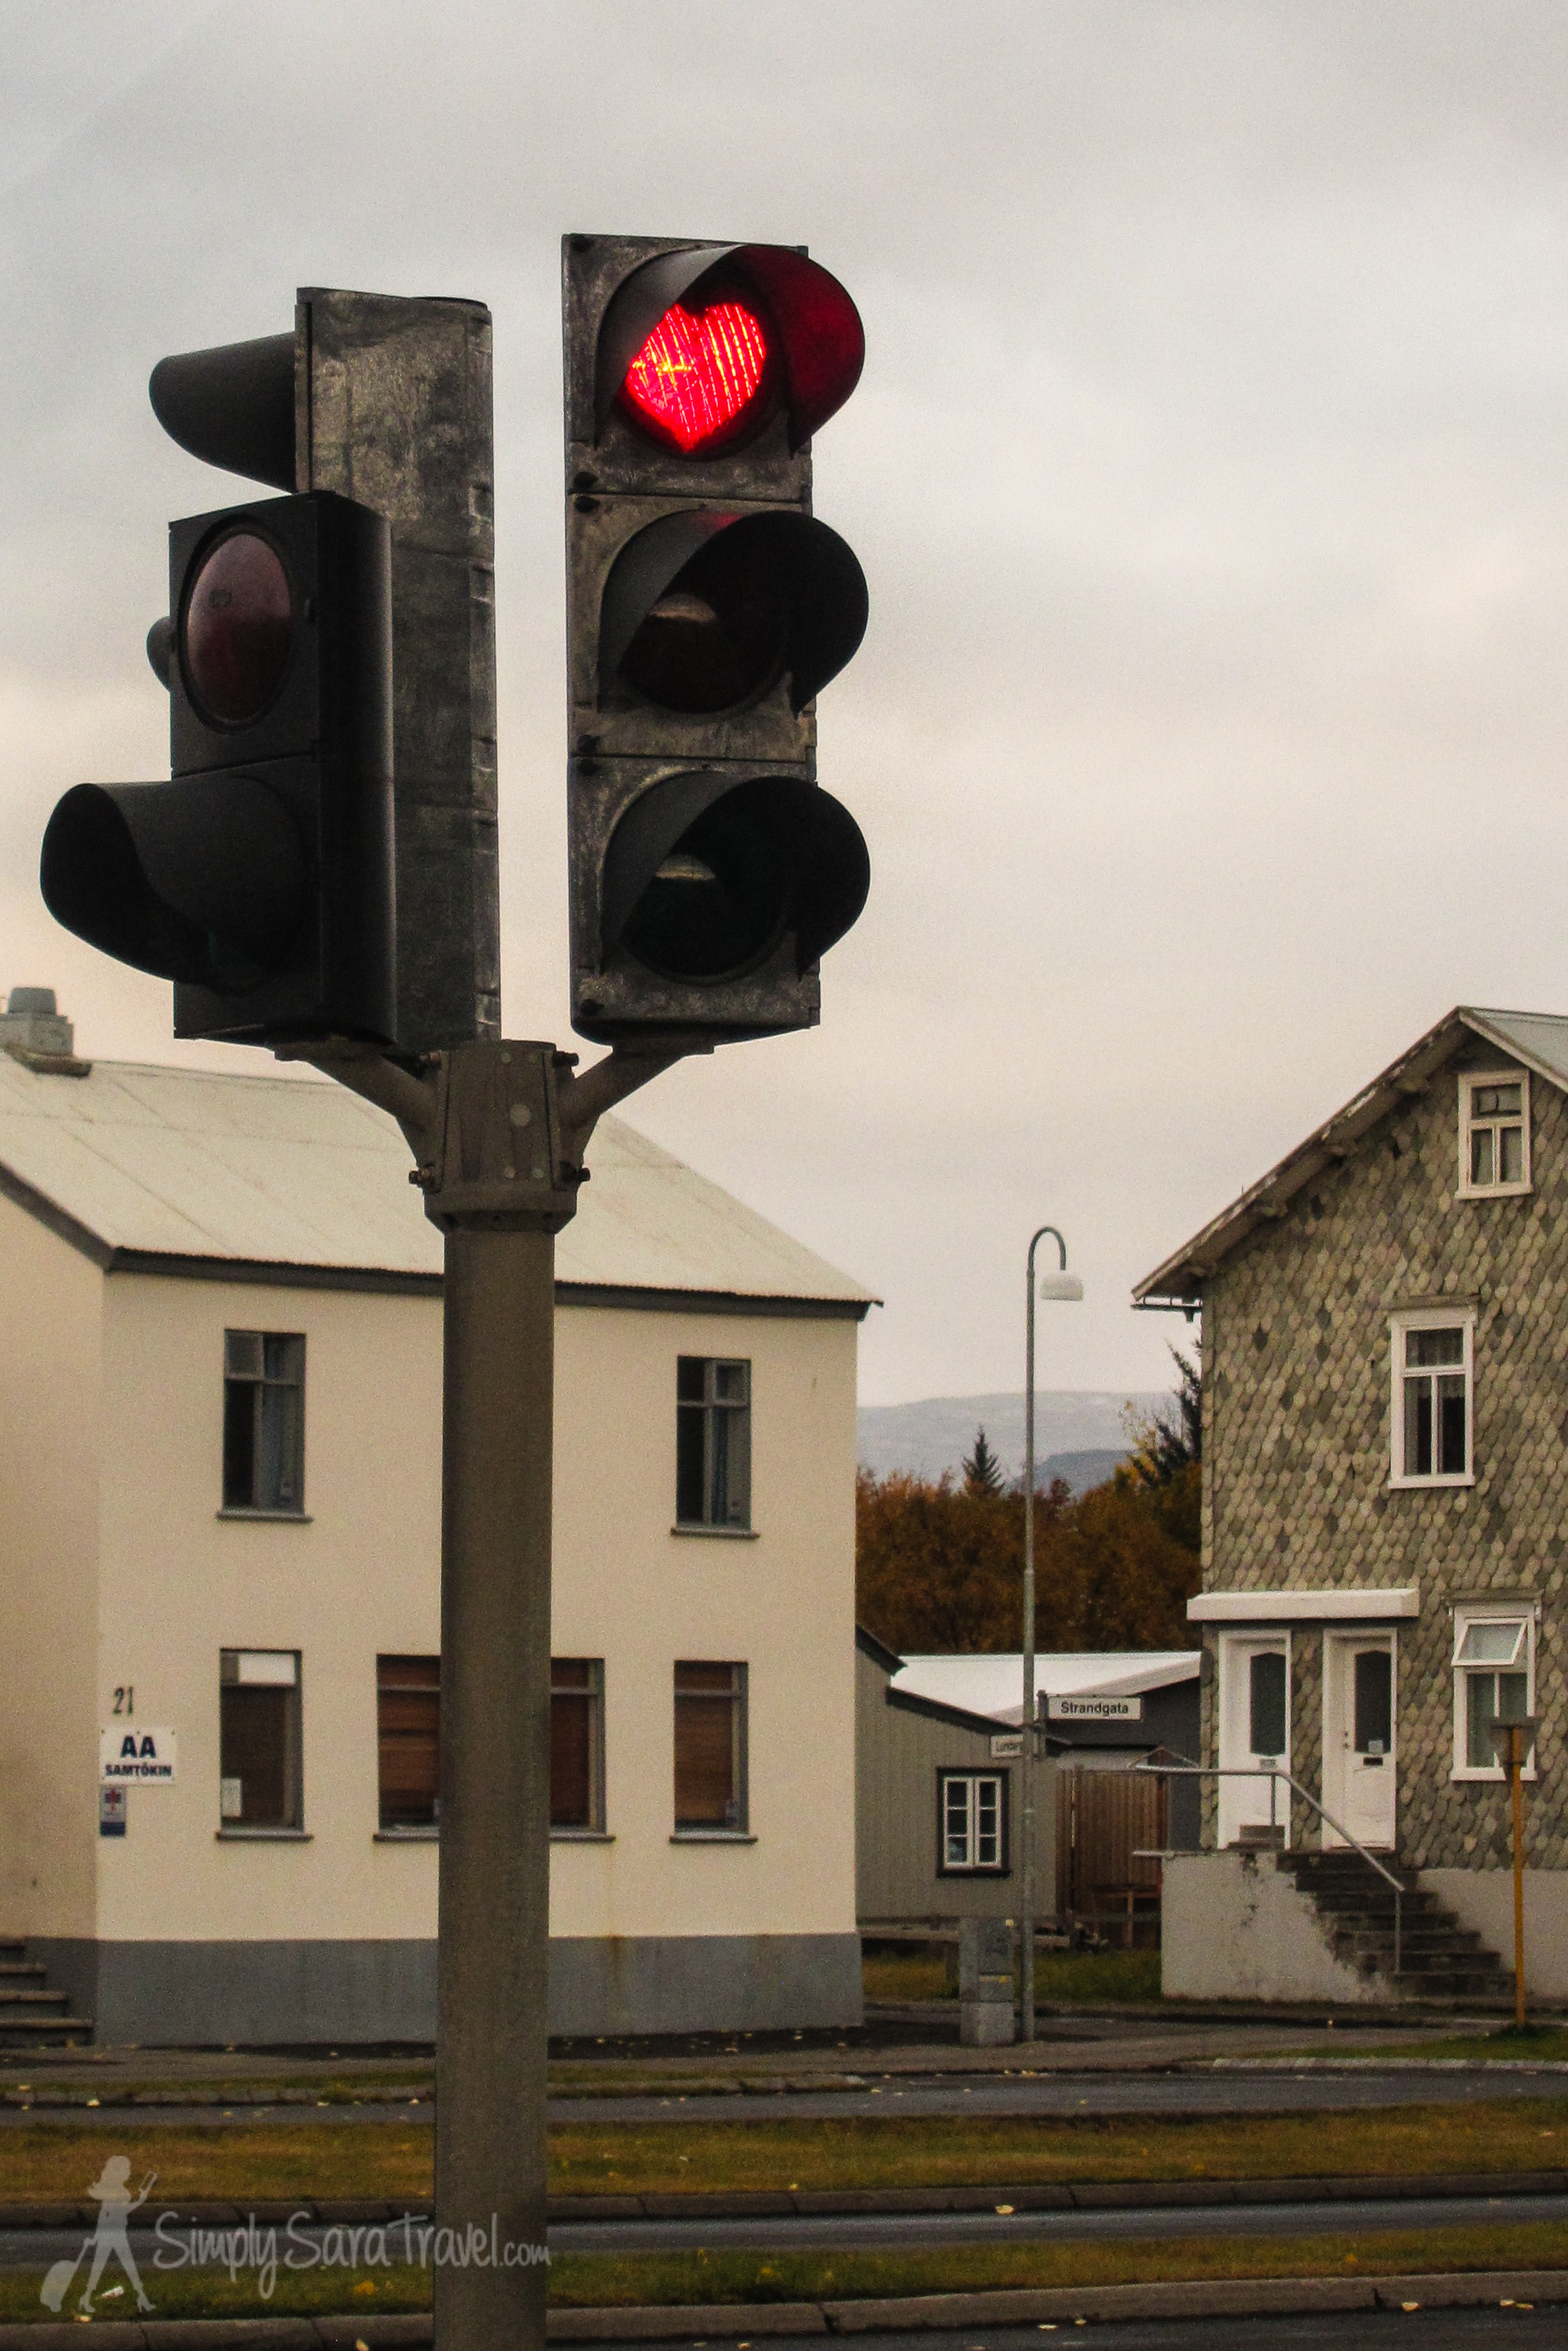 The town of Akureyri has stop lights that light up red hearts. It was part of an effort to  boost spirits  during the country's financial troubles in 2008.